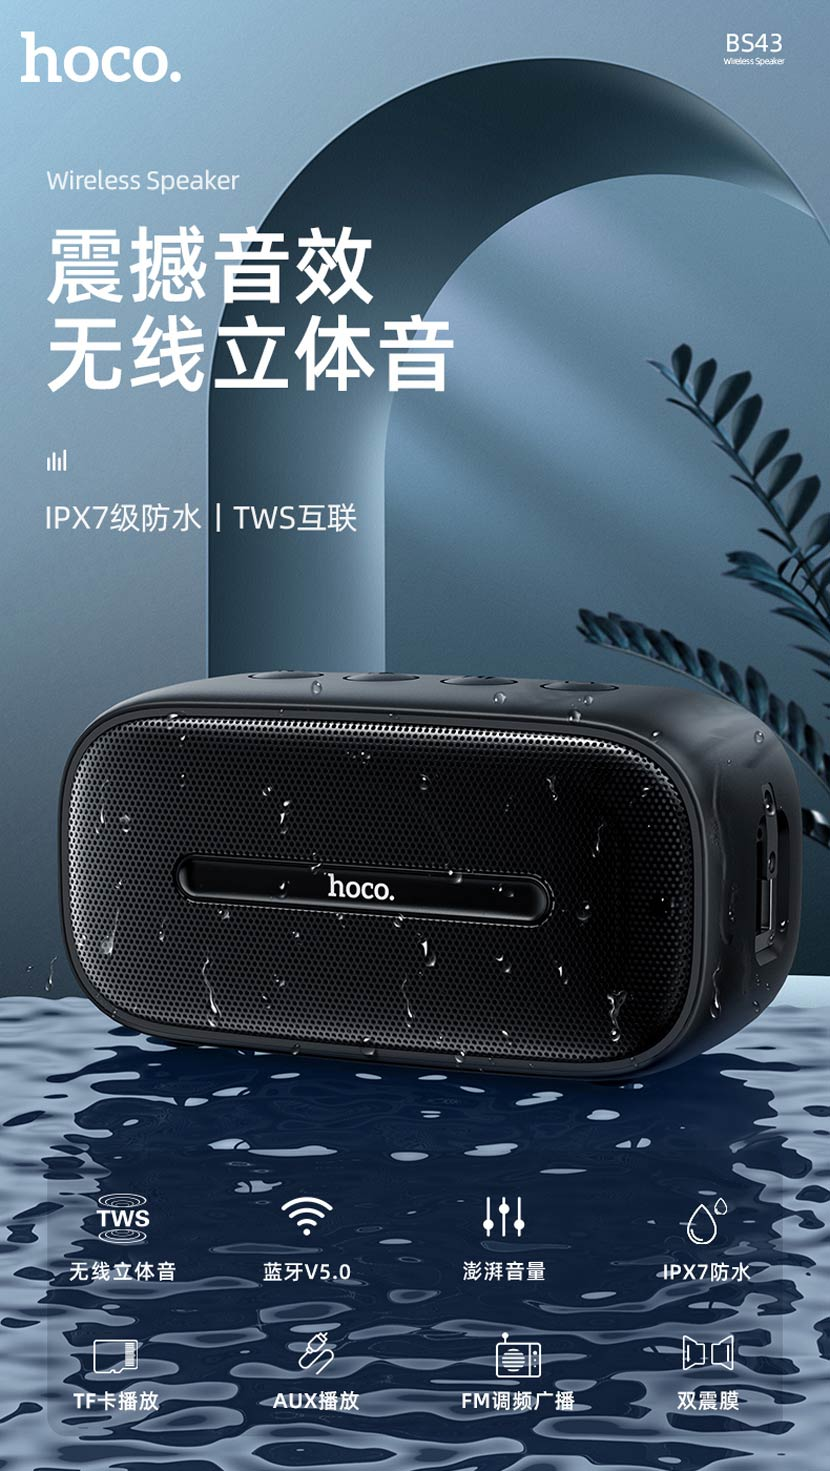 hoco news bs43 cool sound sports wireless speaker cn